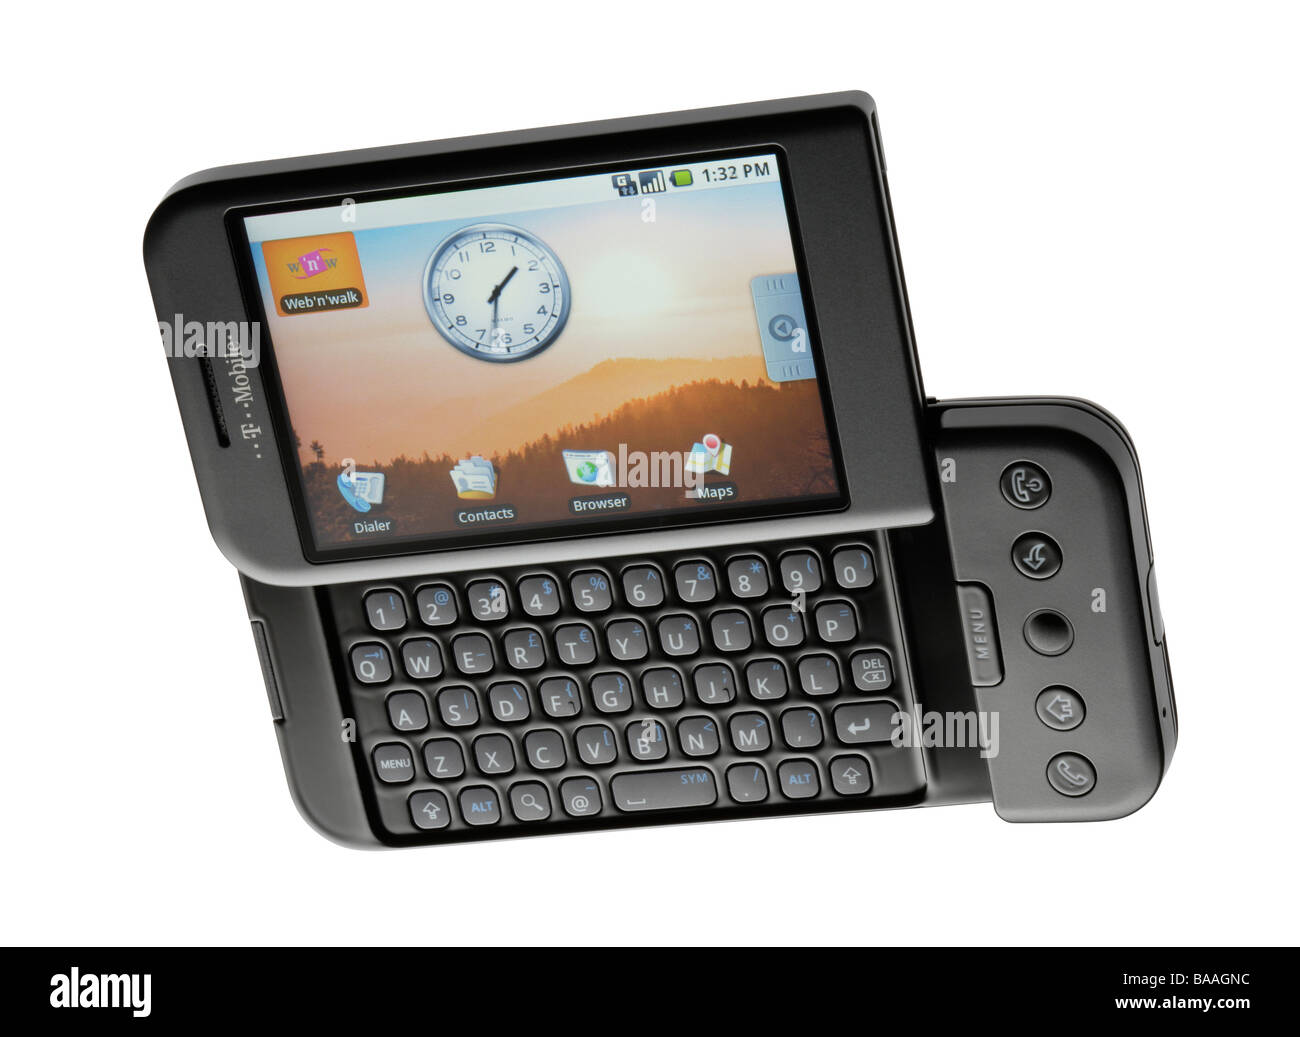 Google T Mobile G1 android phone - Stock Image